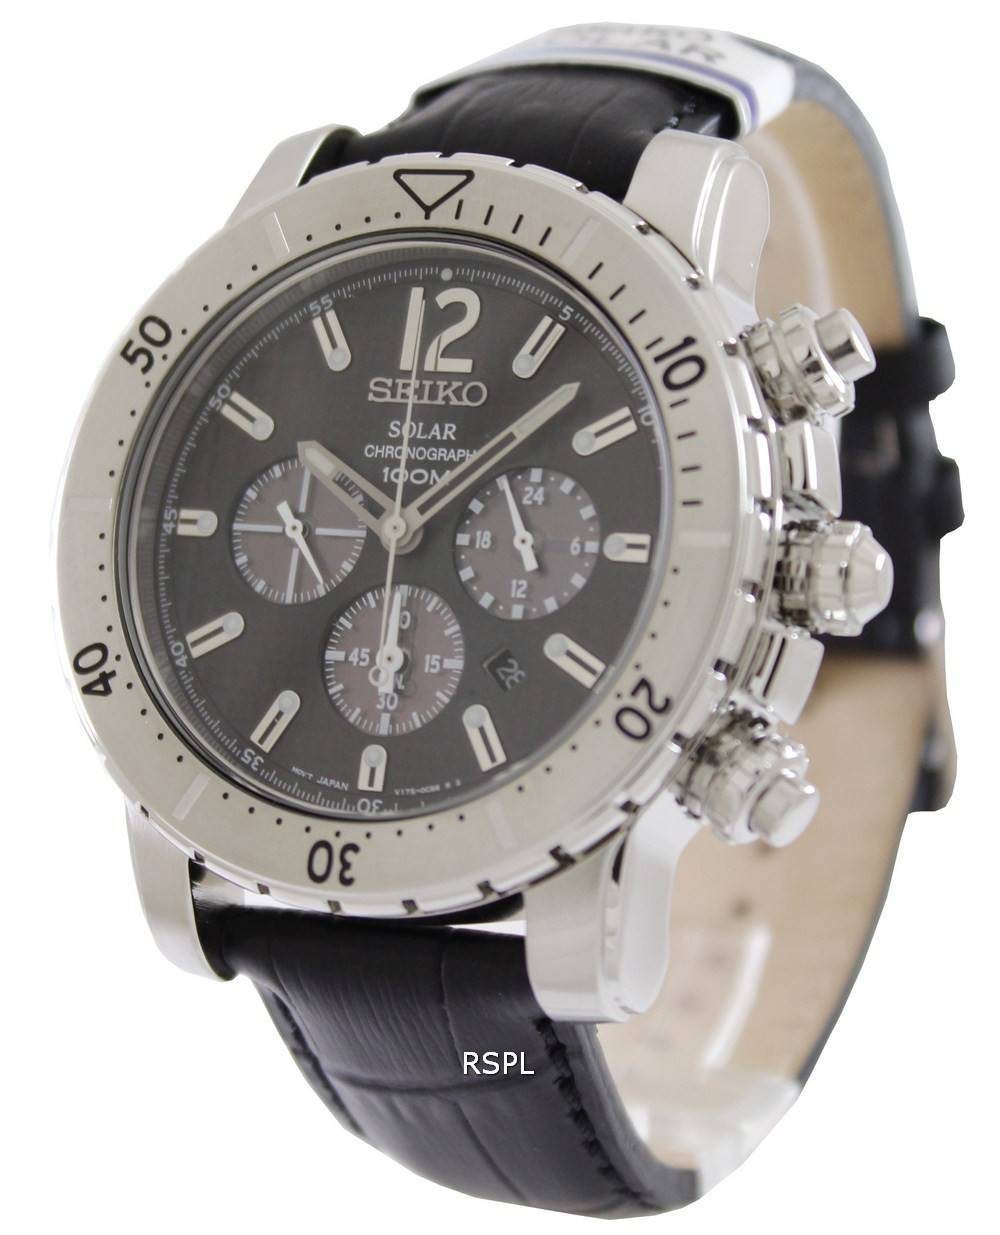 Seiko solar chronograph ssc223p2 mens watch singapore for Solar watches